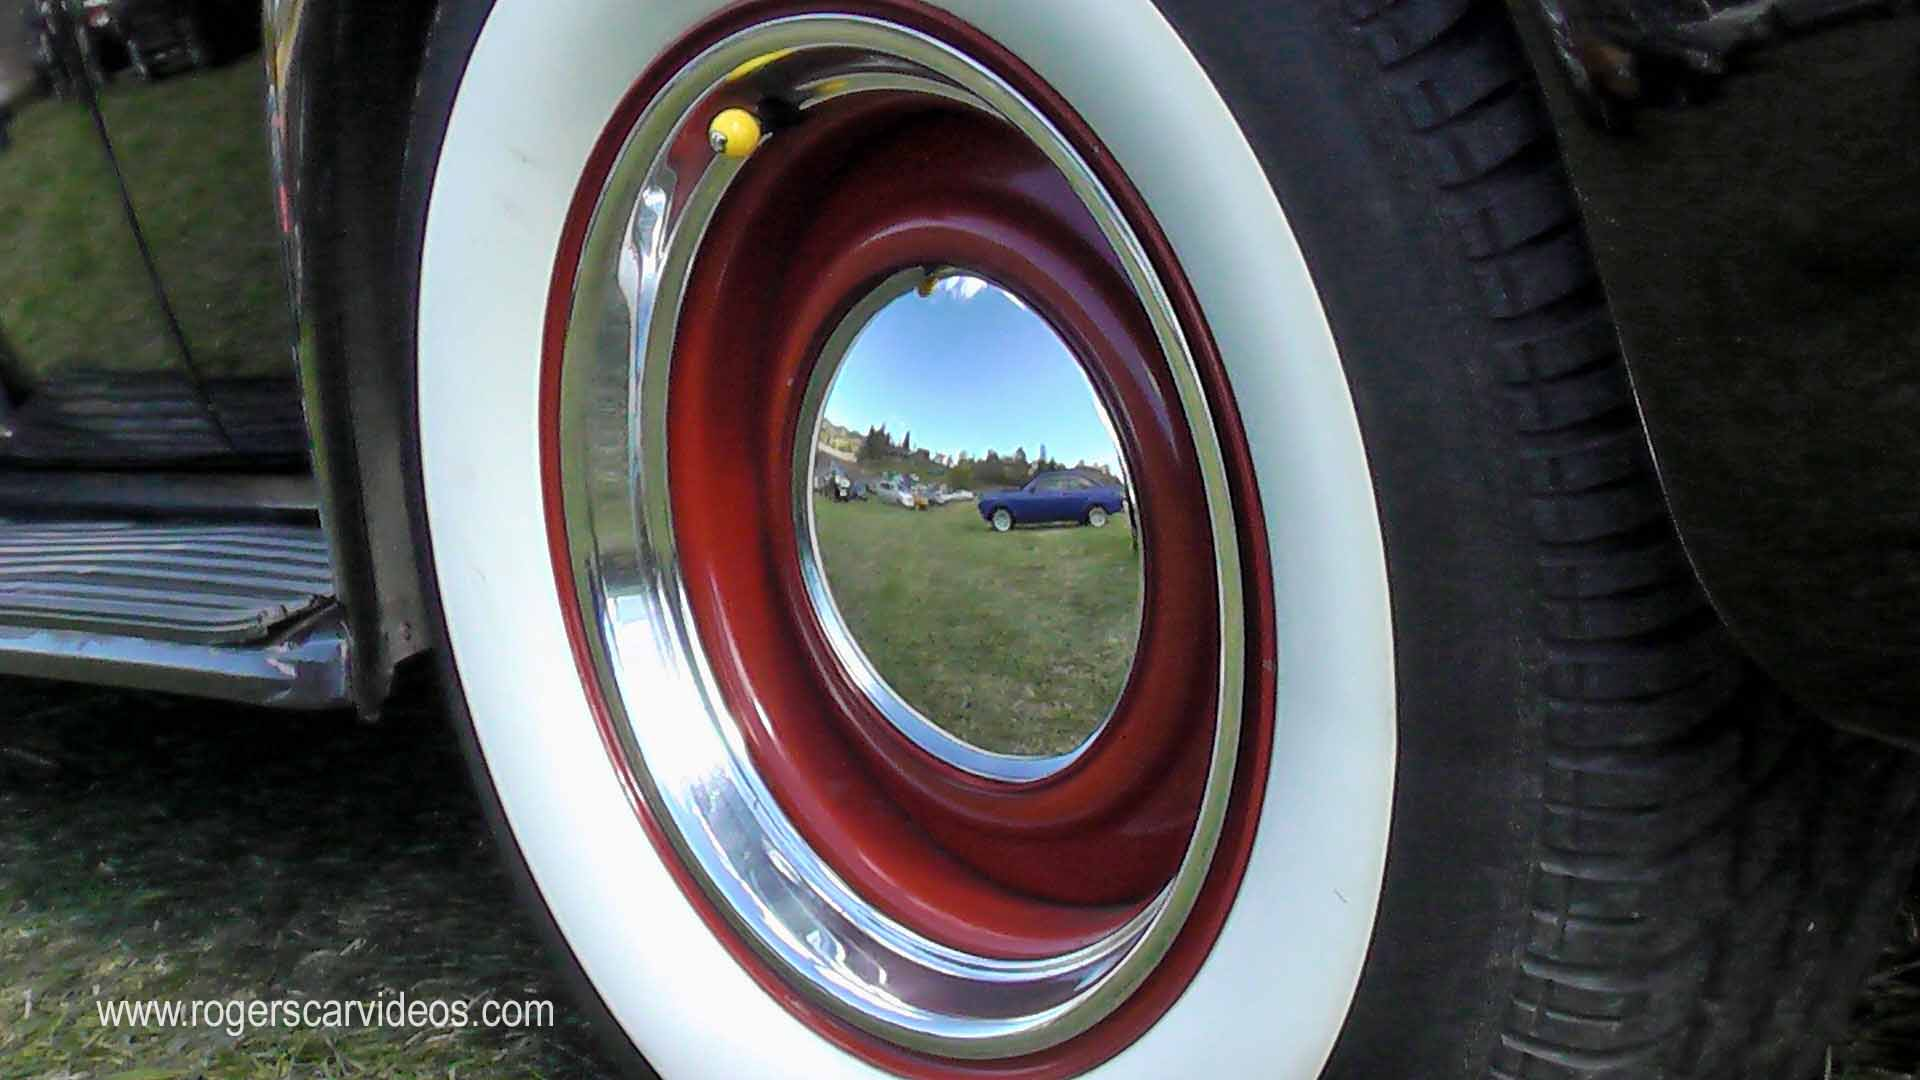 www.rogerscarvideos.com Bendix Spring 2015 Edited Watermarked (168)